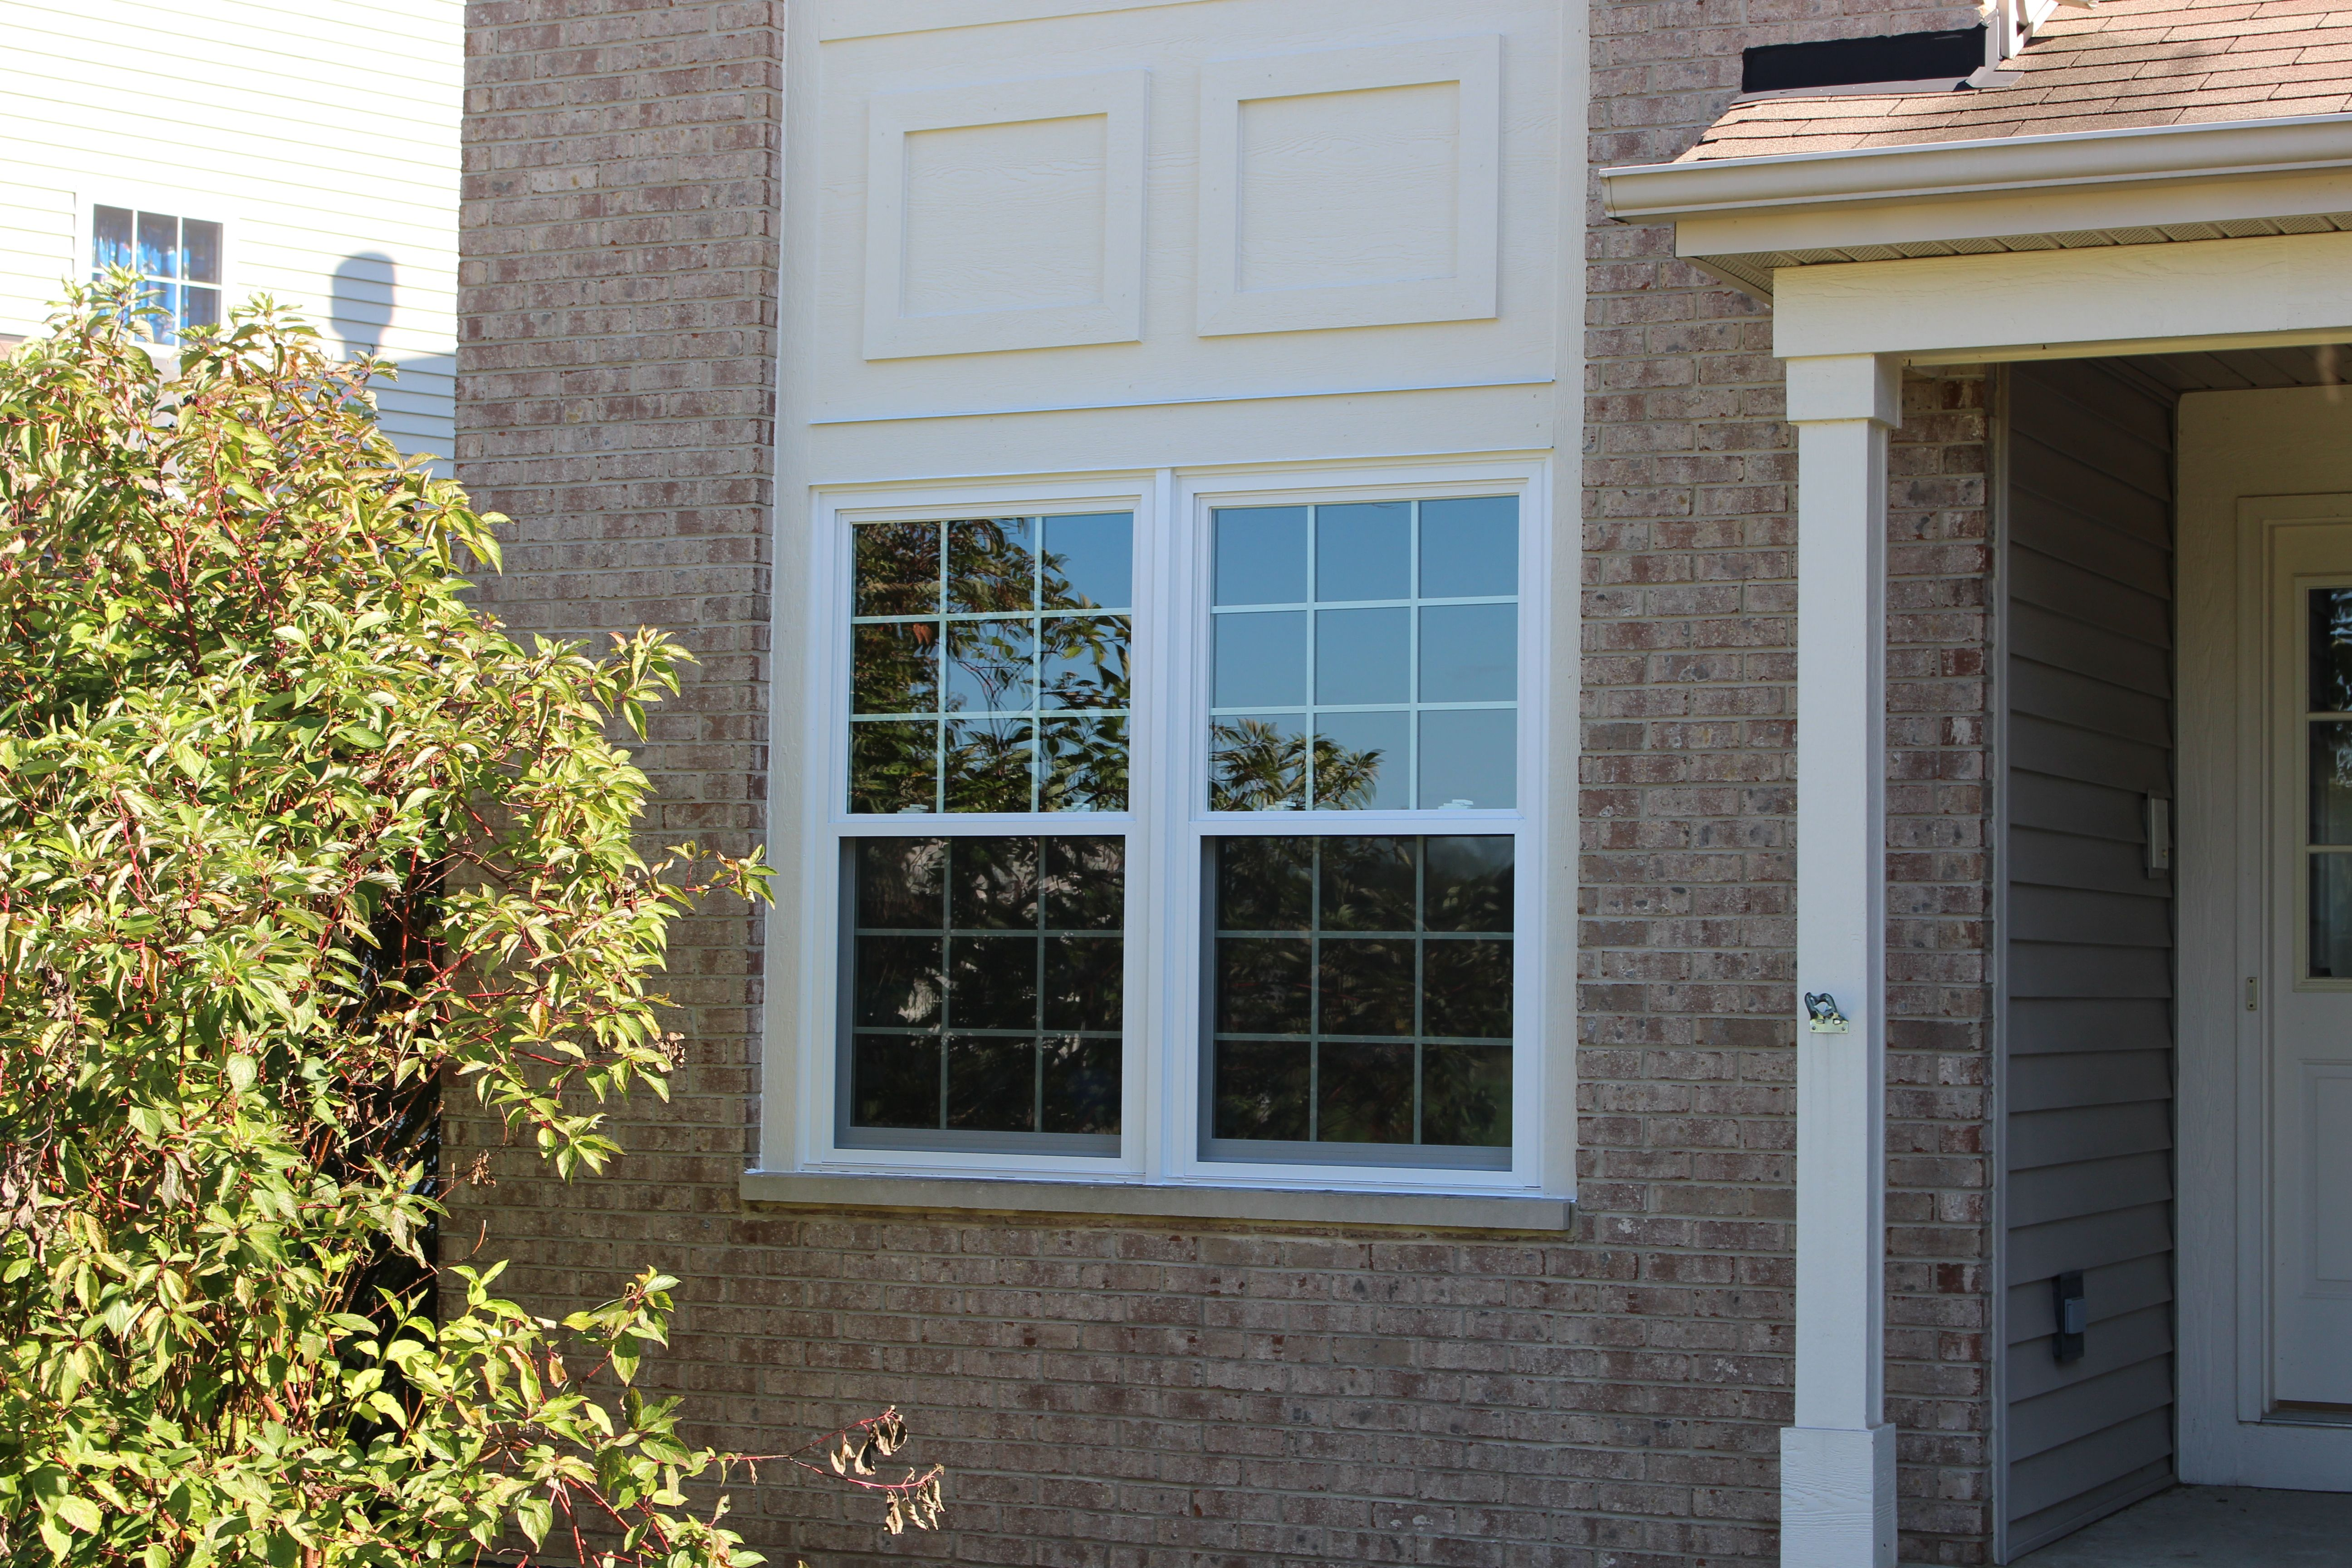 Builder Grade Windows Replaced By New Updated Windows Windows Replace Door Windows Doors